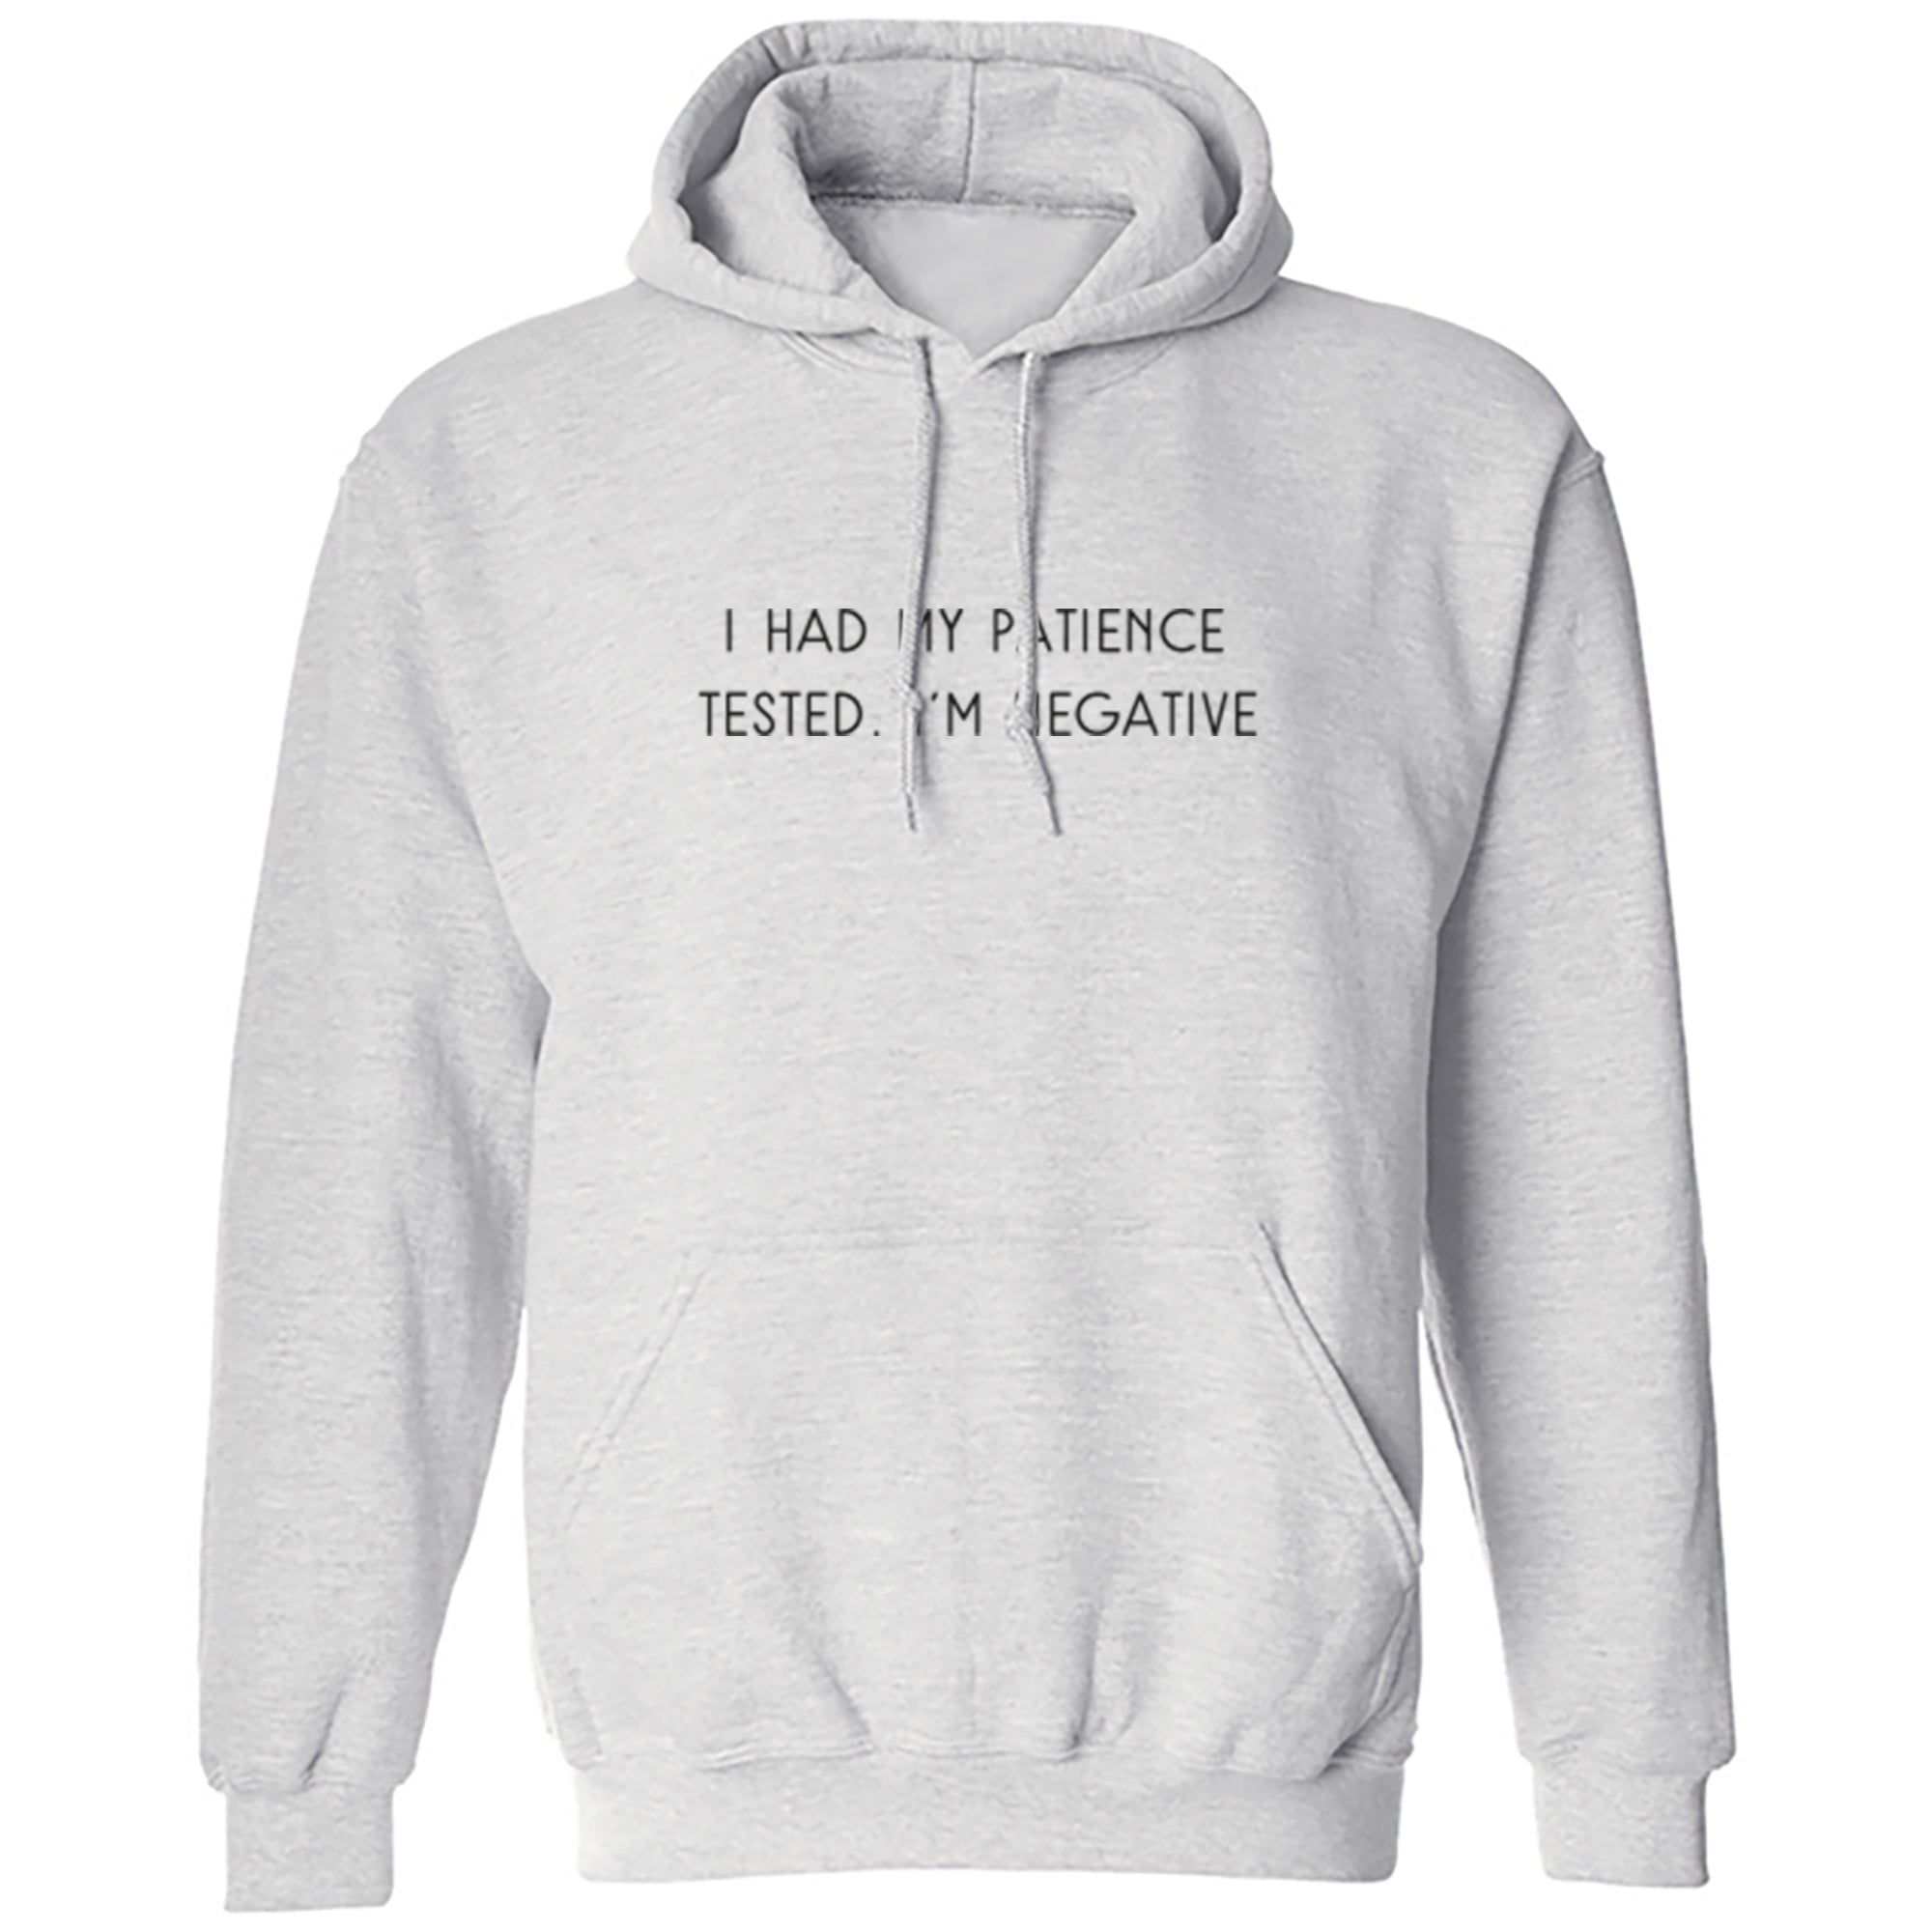 I Had My Patience Tested. I'm Negative Unisex Hoodie S1127 - Illustrated Identity Ltd.